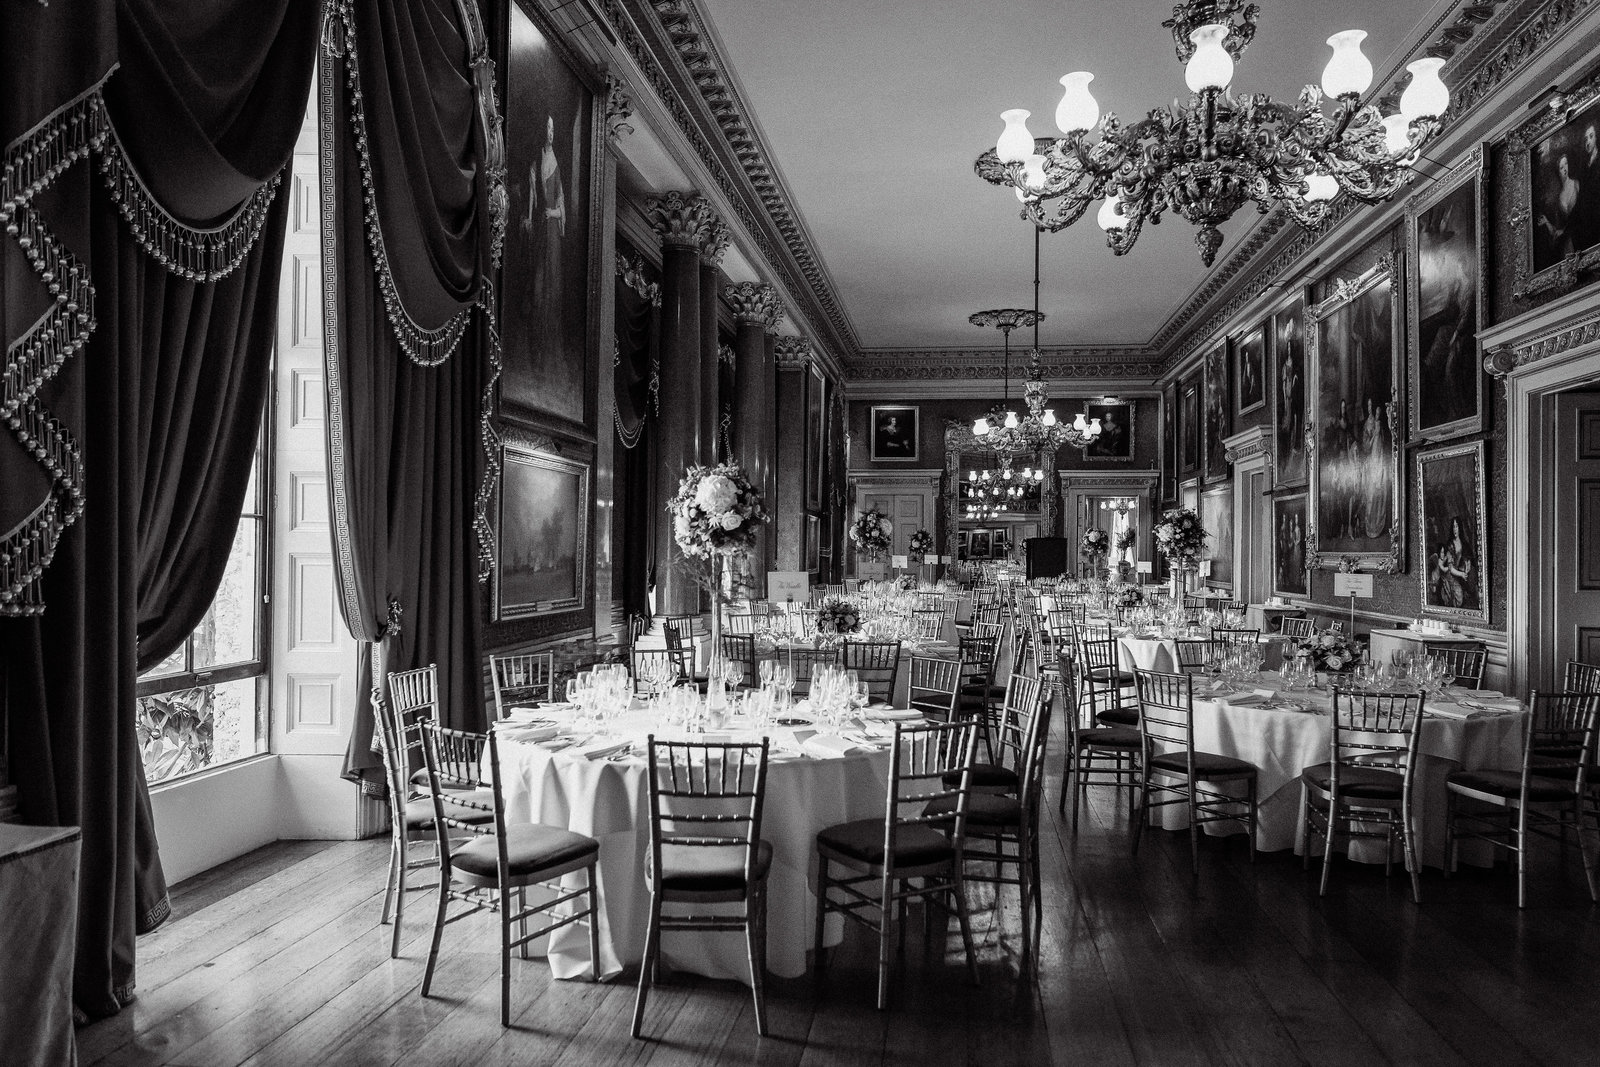 Black and white wedding photo of the grand ballroom at the Goodwood House wedding venue with draped curtains. chandelier and tall floral displays on round tables.